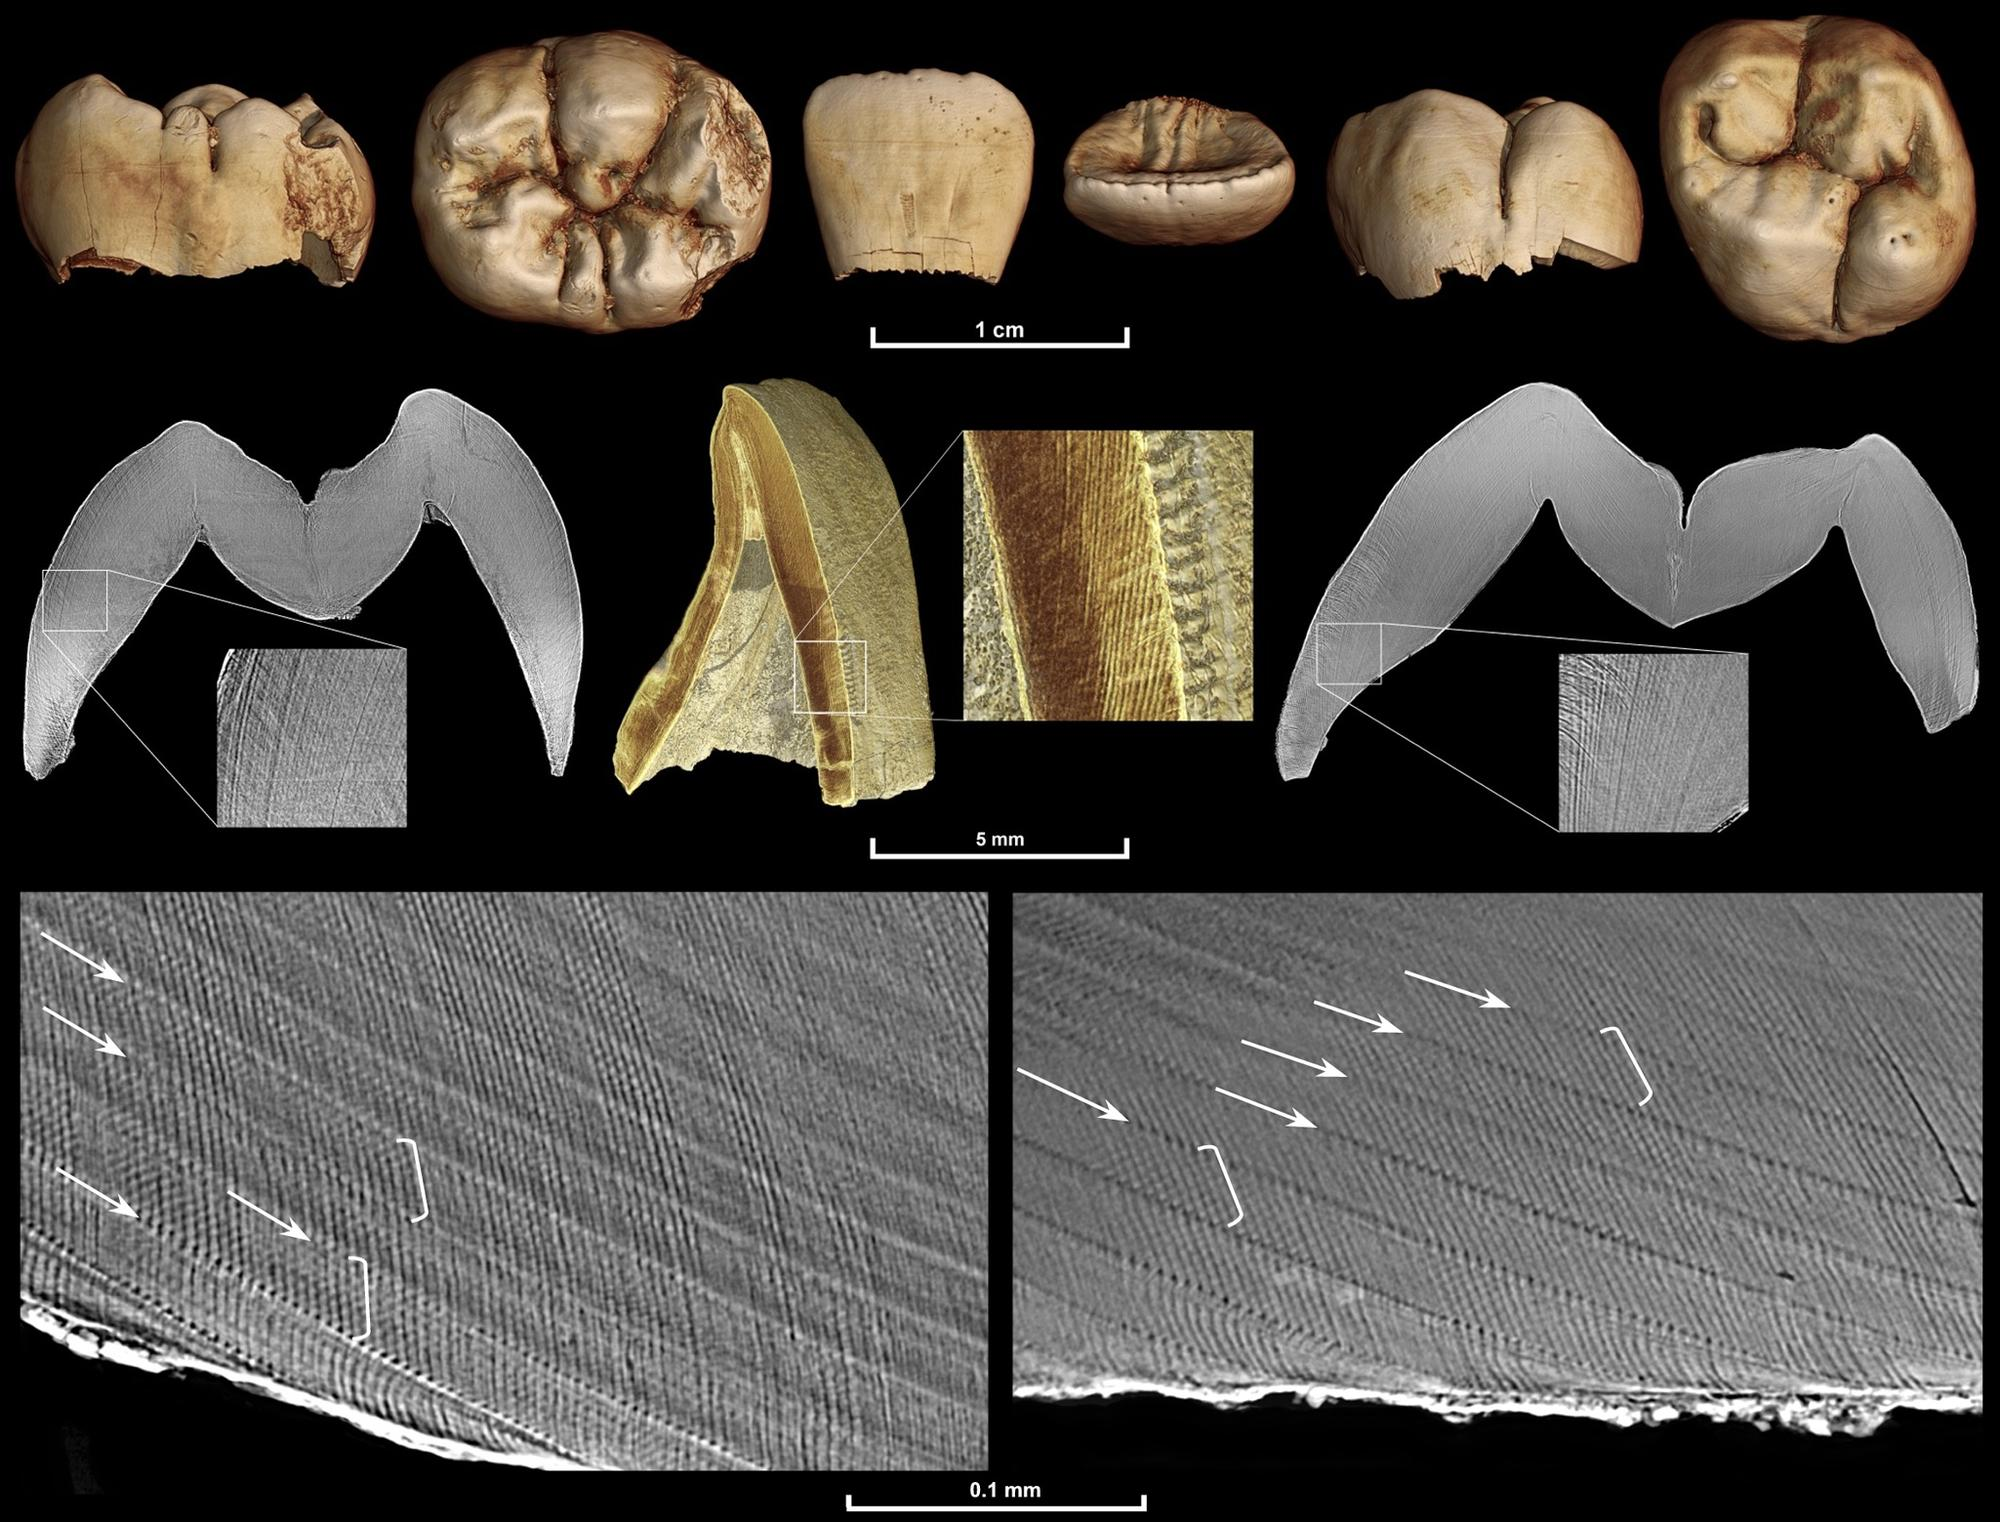 Multiscale synchrotron imaging of a fossil Homo juvenile